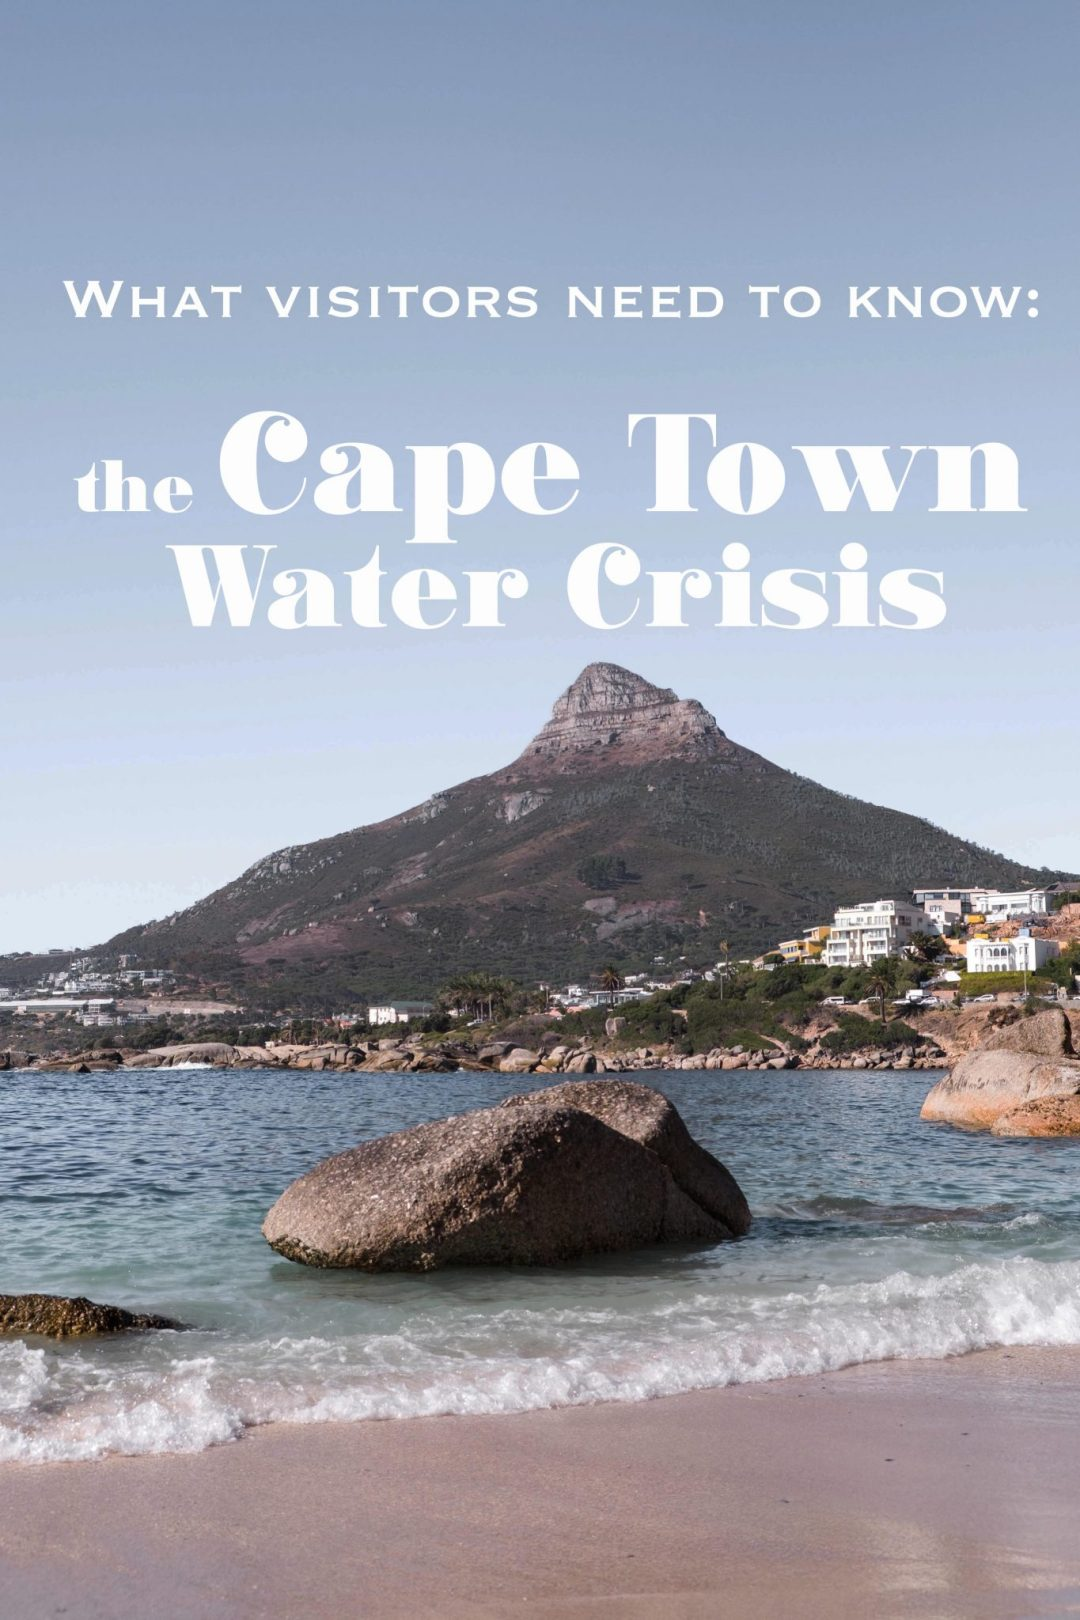 Updated post: What do visitors need to except when coming to South Africa during the current Cape Town water crisis in 2019. Tips and inside information on what to do and expect. #cityofcapetown #visitsouthafrica #thisisafrica #southafrica